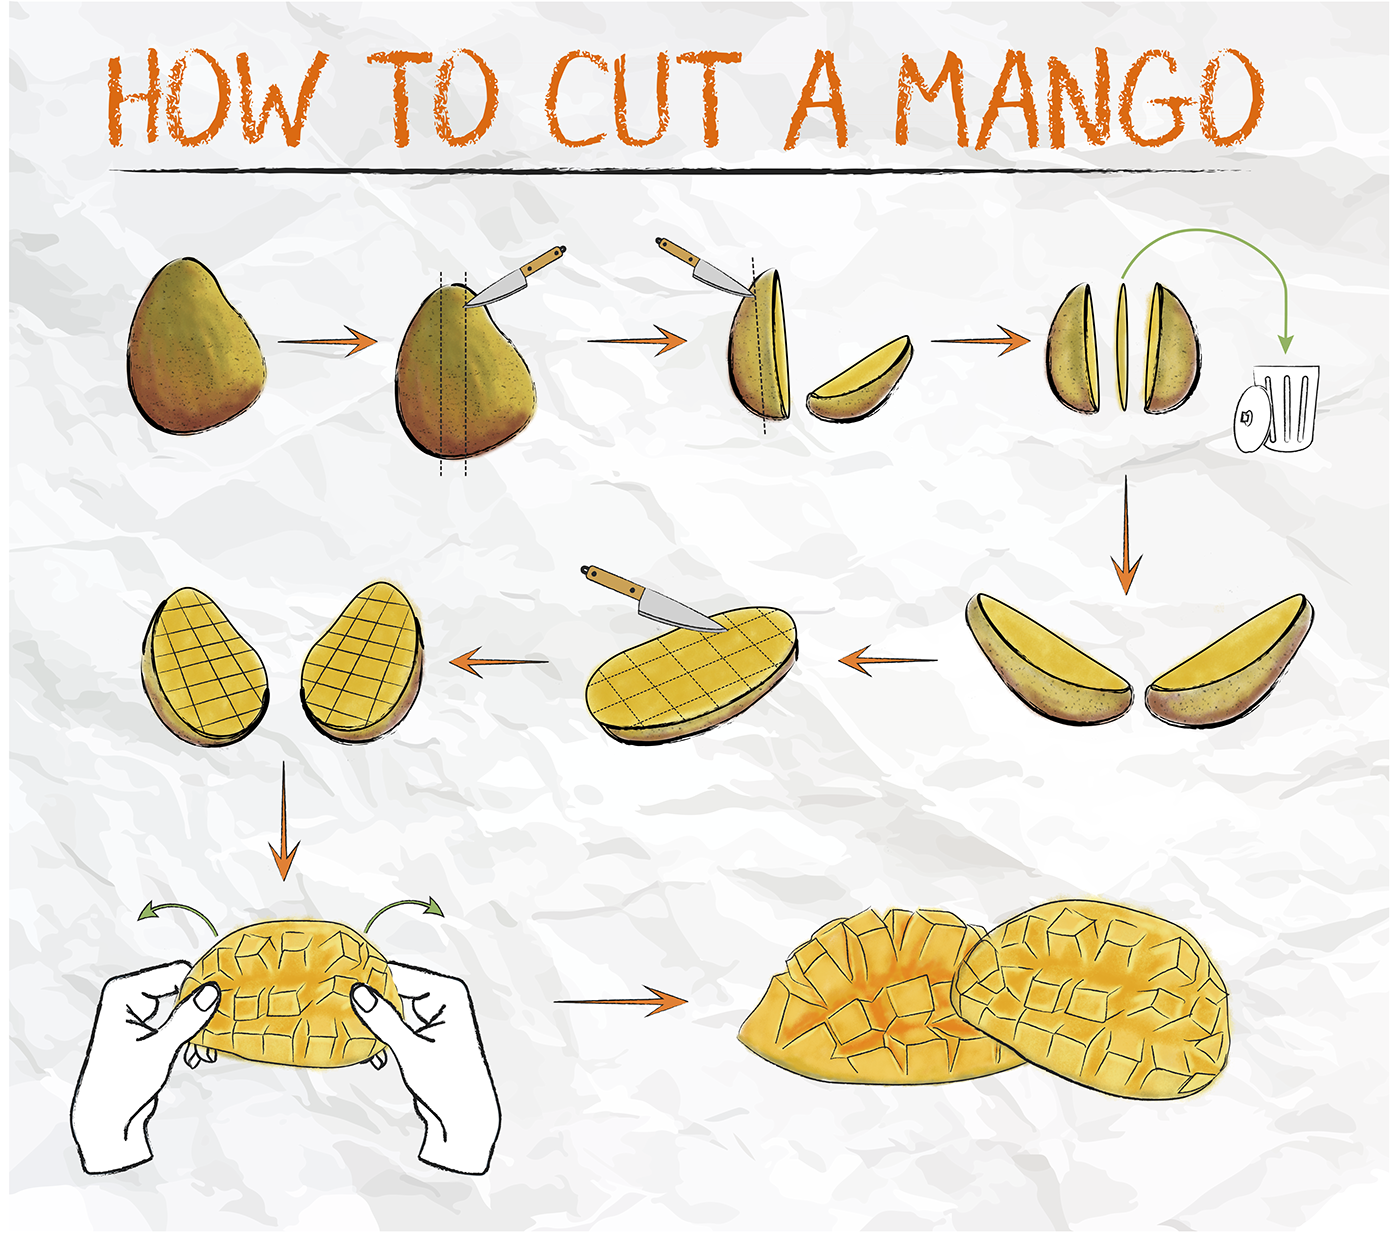 How to cut a mango (Wordless Diagram) on Behance